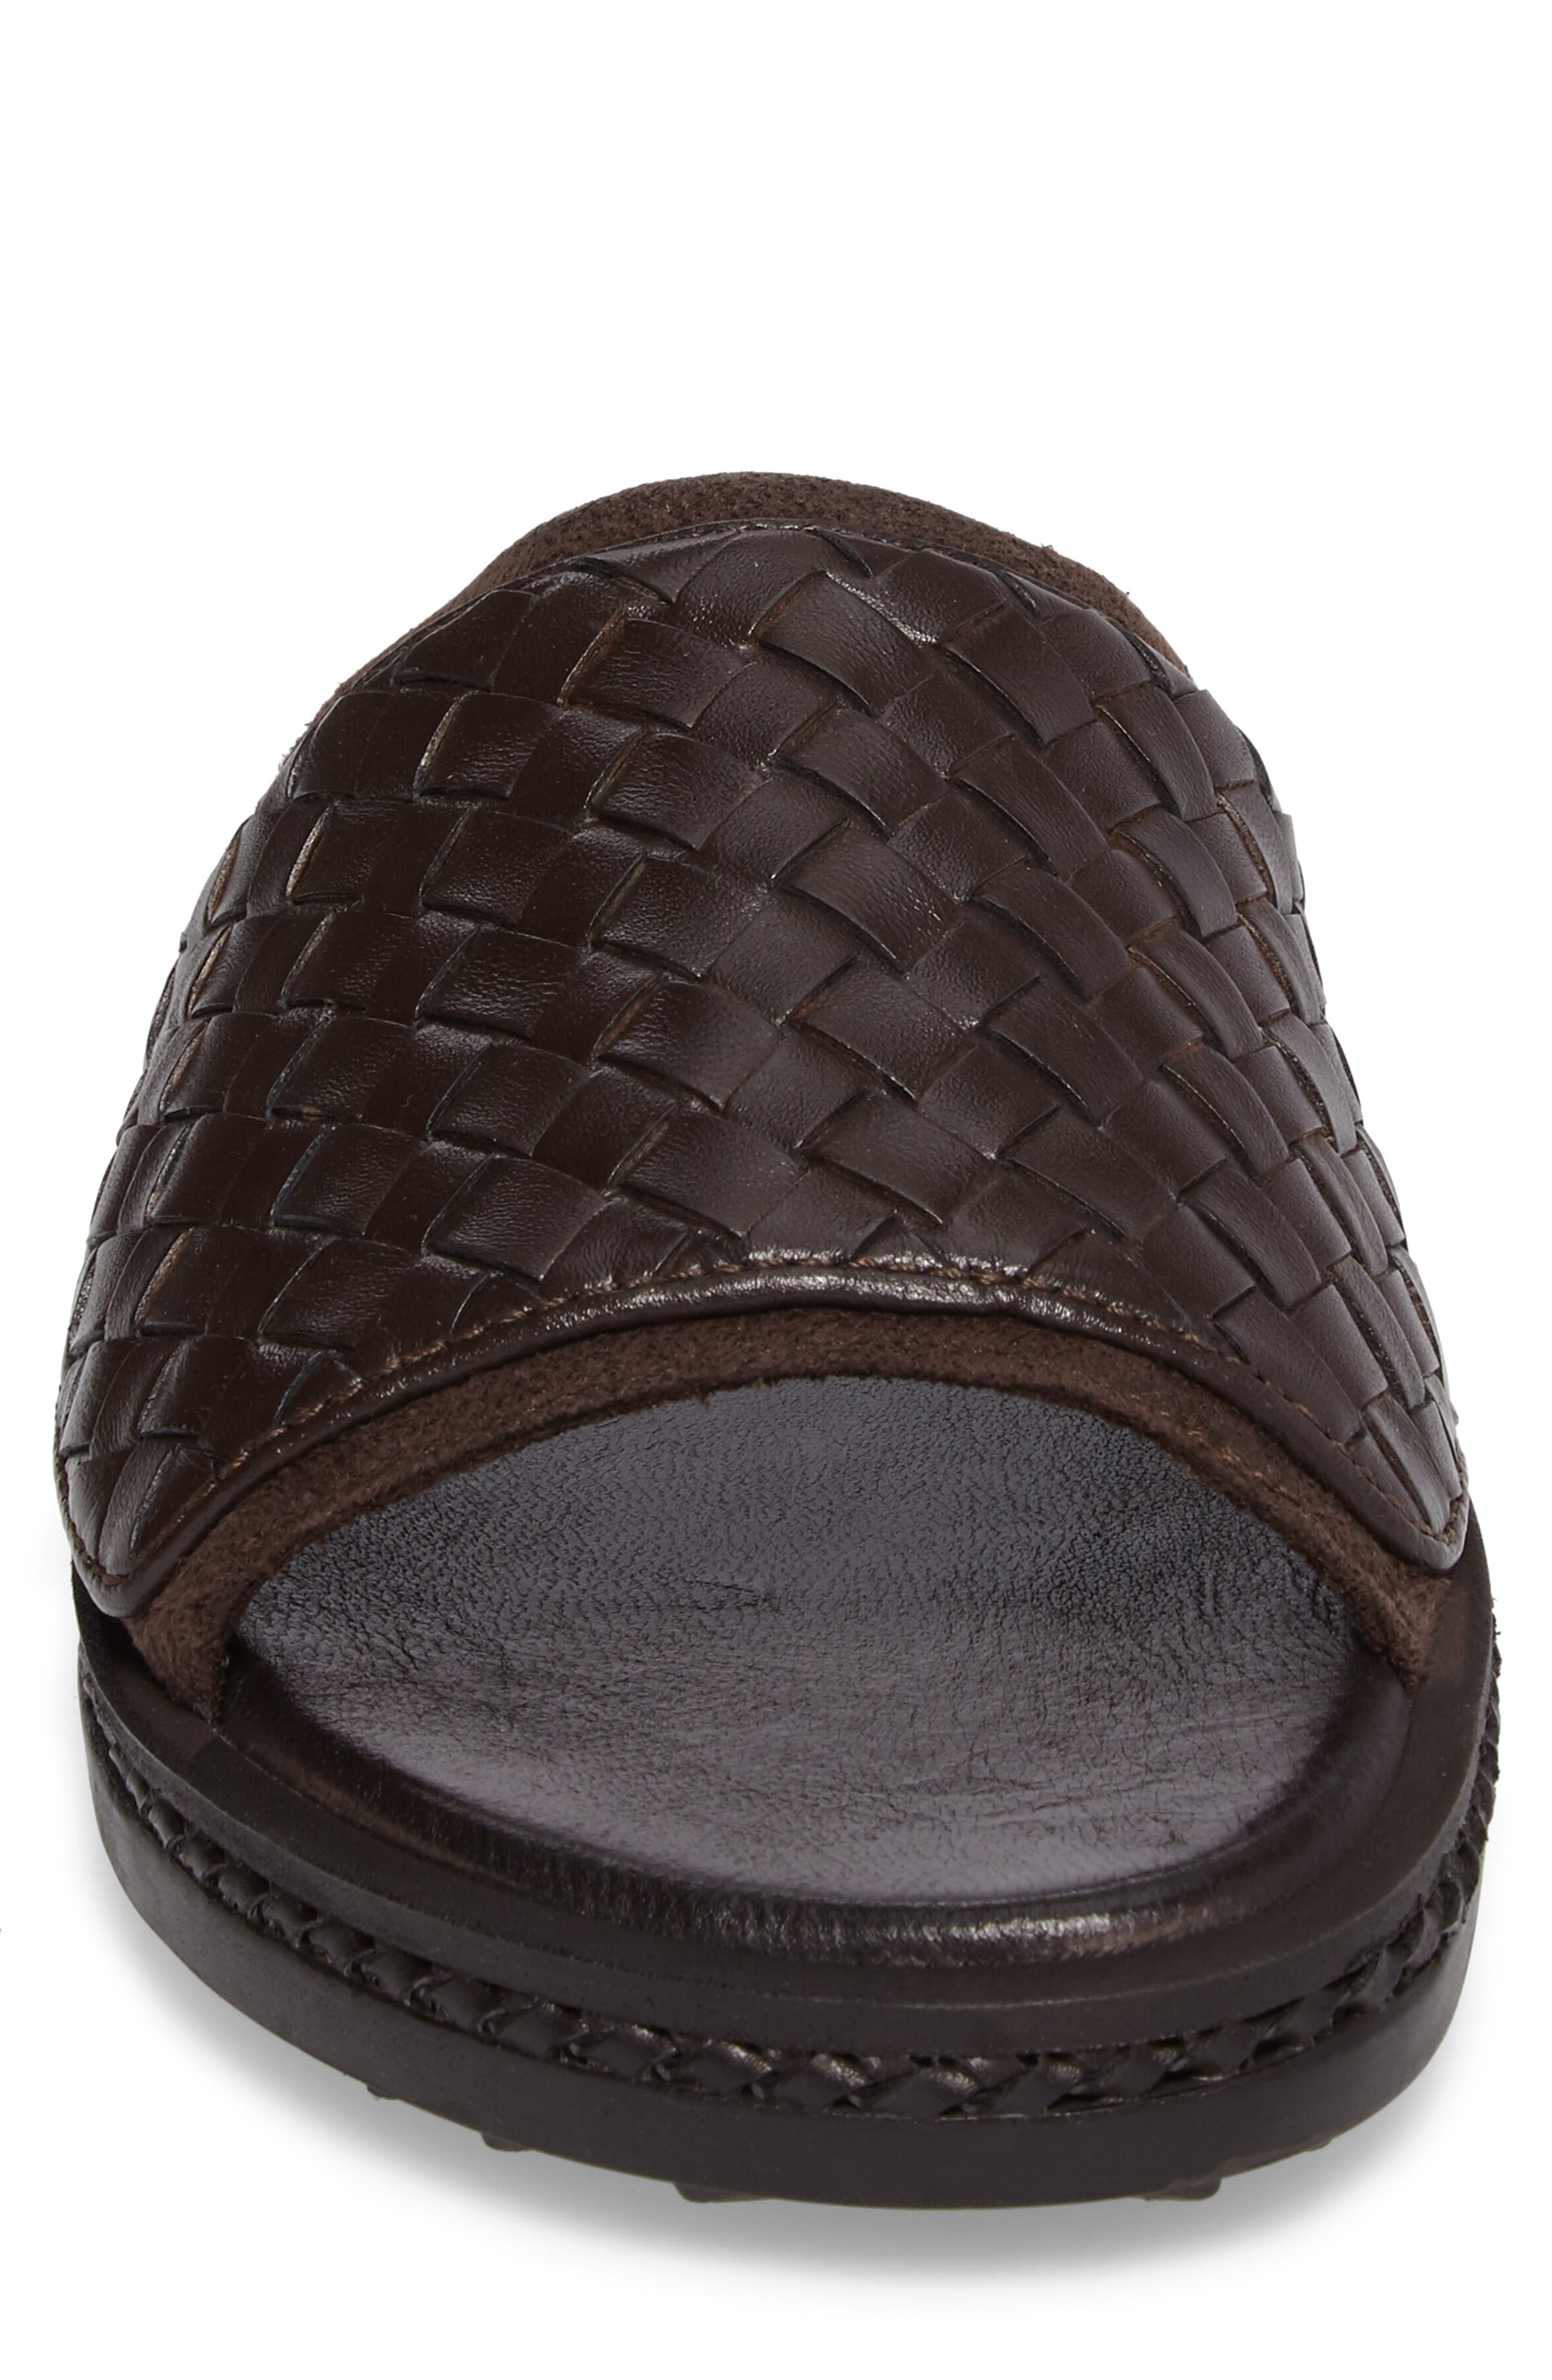 Shore Crest Woven Slide Sandal,                             Alternate thumbnail 4, color,                             Dark Brown